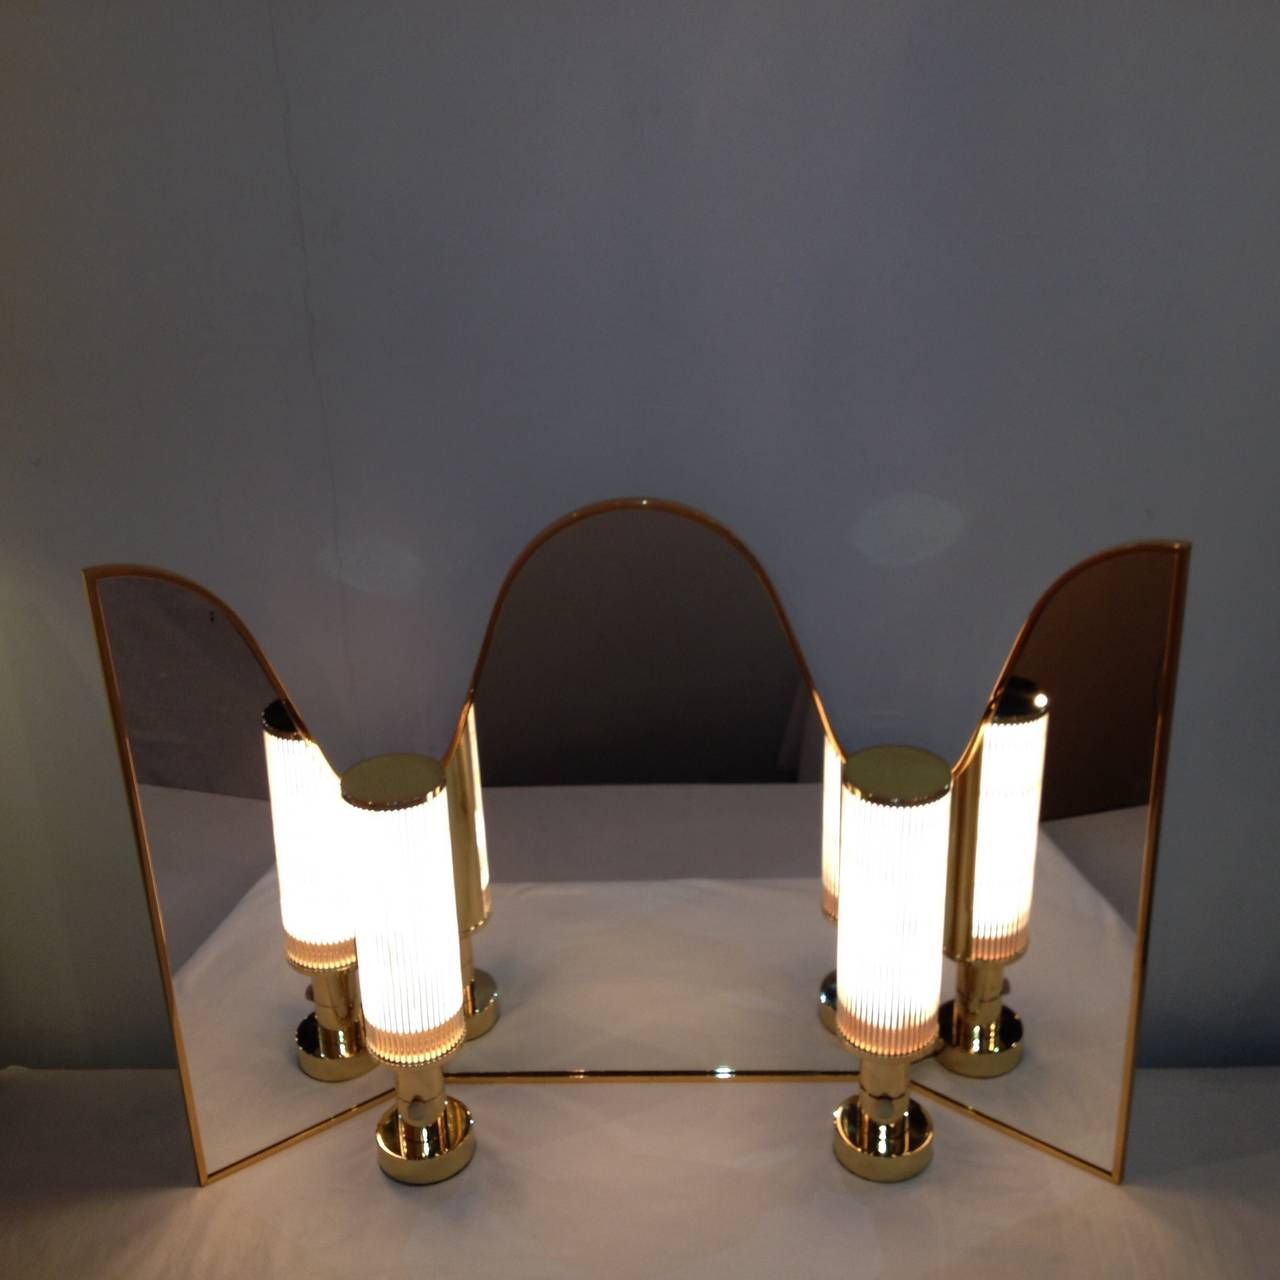 hansen co vanity mirror with vanity lamps for sale at 1stdibs. Black Bedroom Furniture Sets. Home Design Ideas